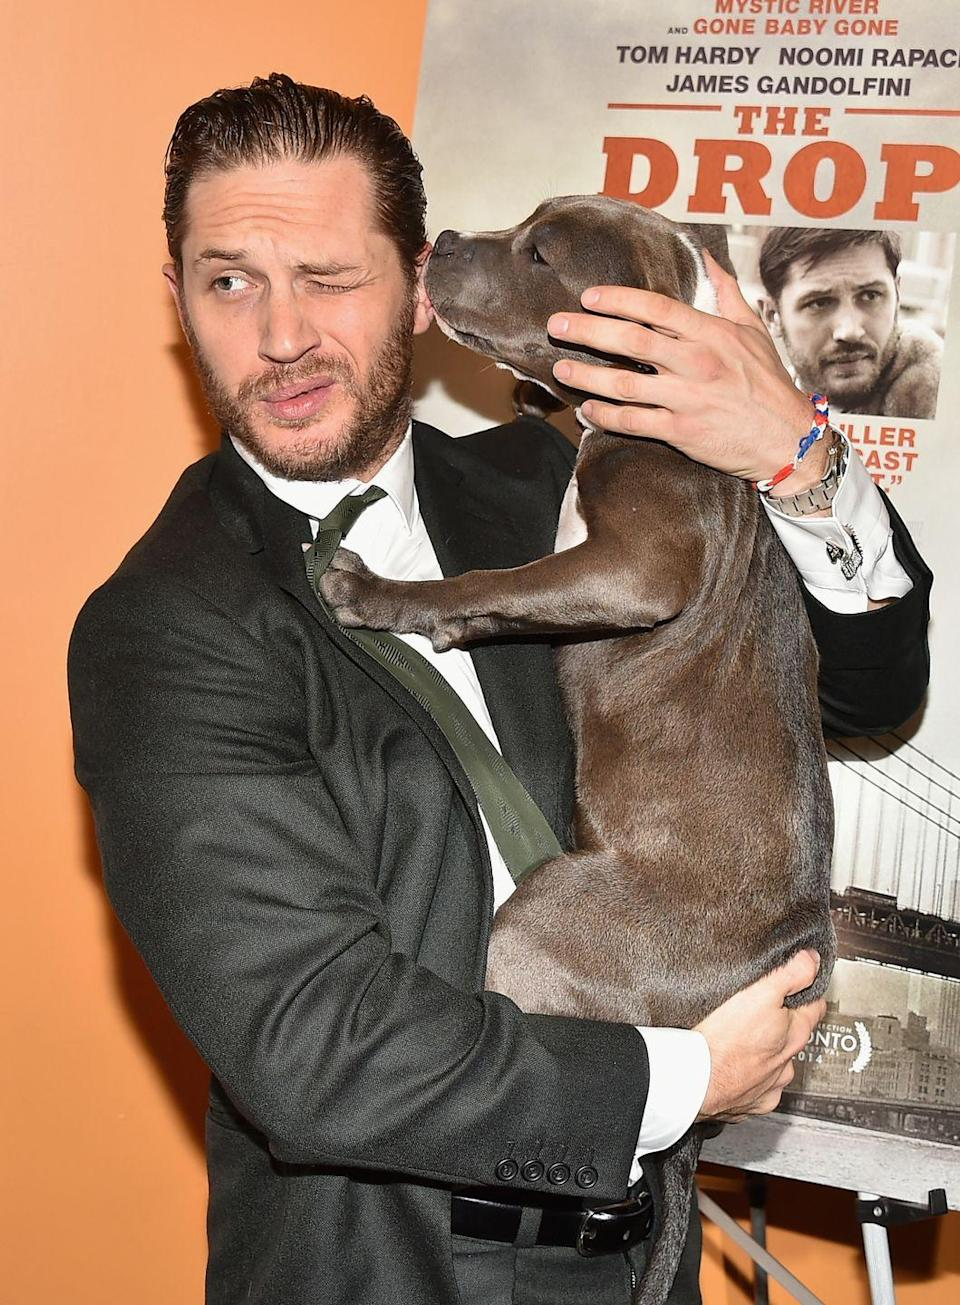 <p>Tom Hardy is a major dog lover and was left devastated when his canine Woody (who accompanied him to the Legend premiere in 2015) passed away a few years ago. </p><p>Here's Hardy with Rocco, who starred in his film The Drop in 2014.</p>